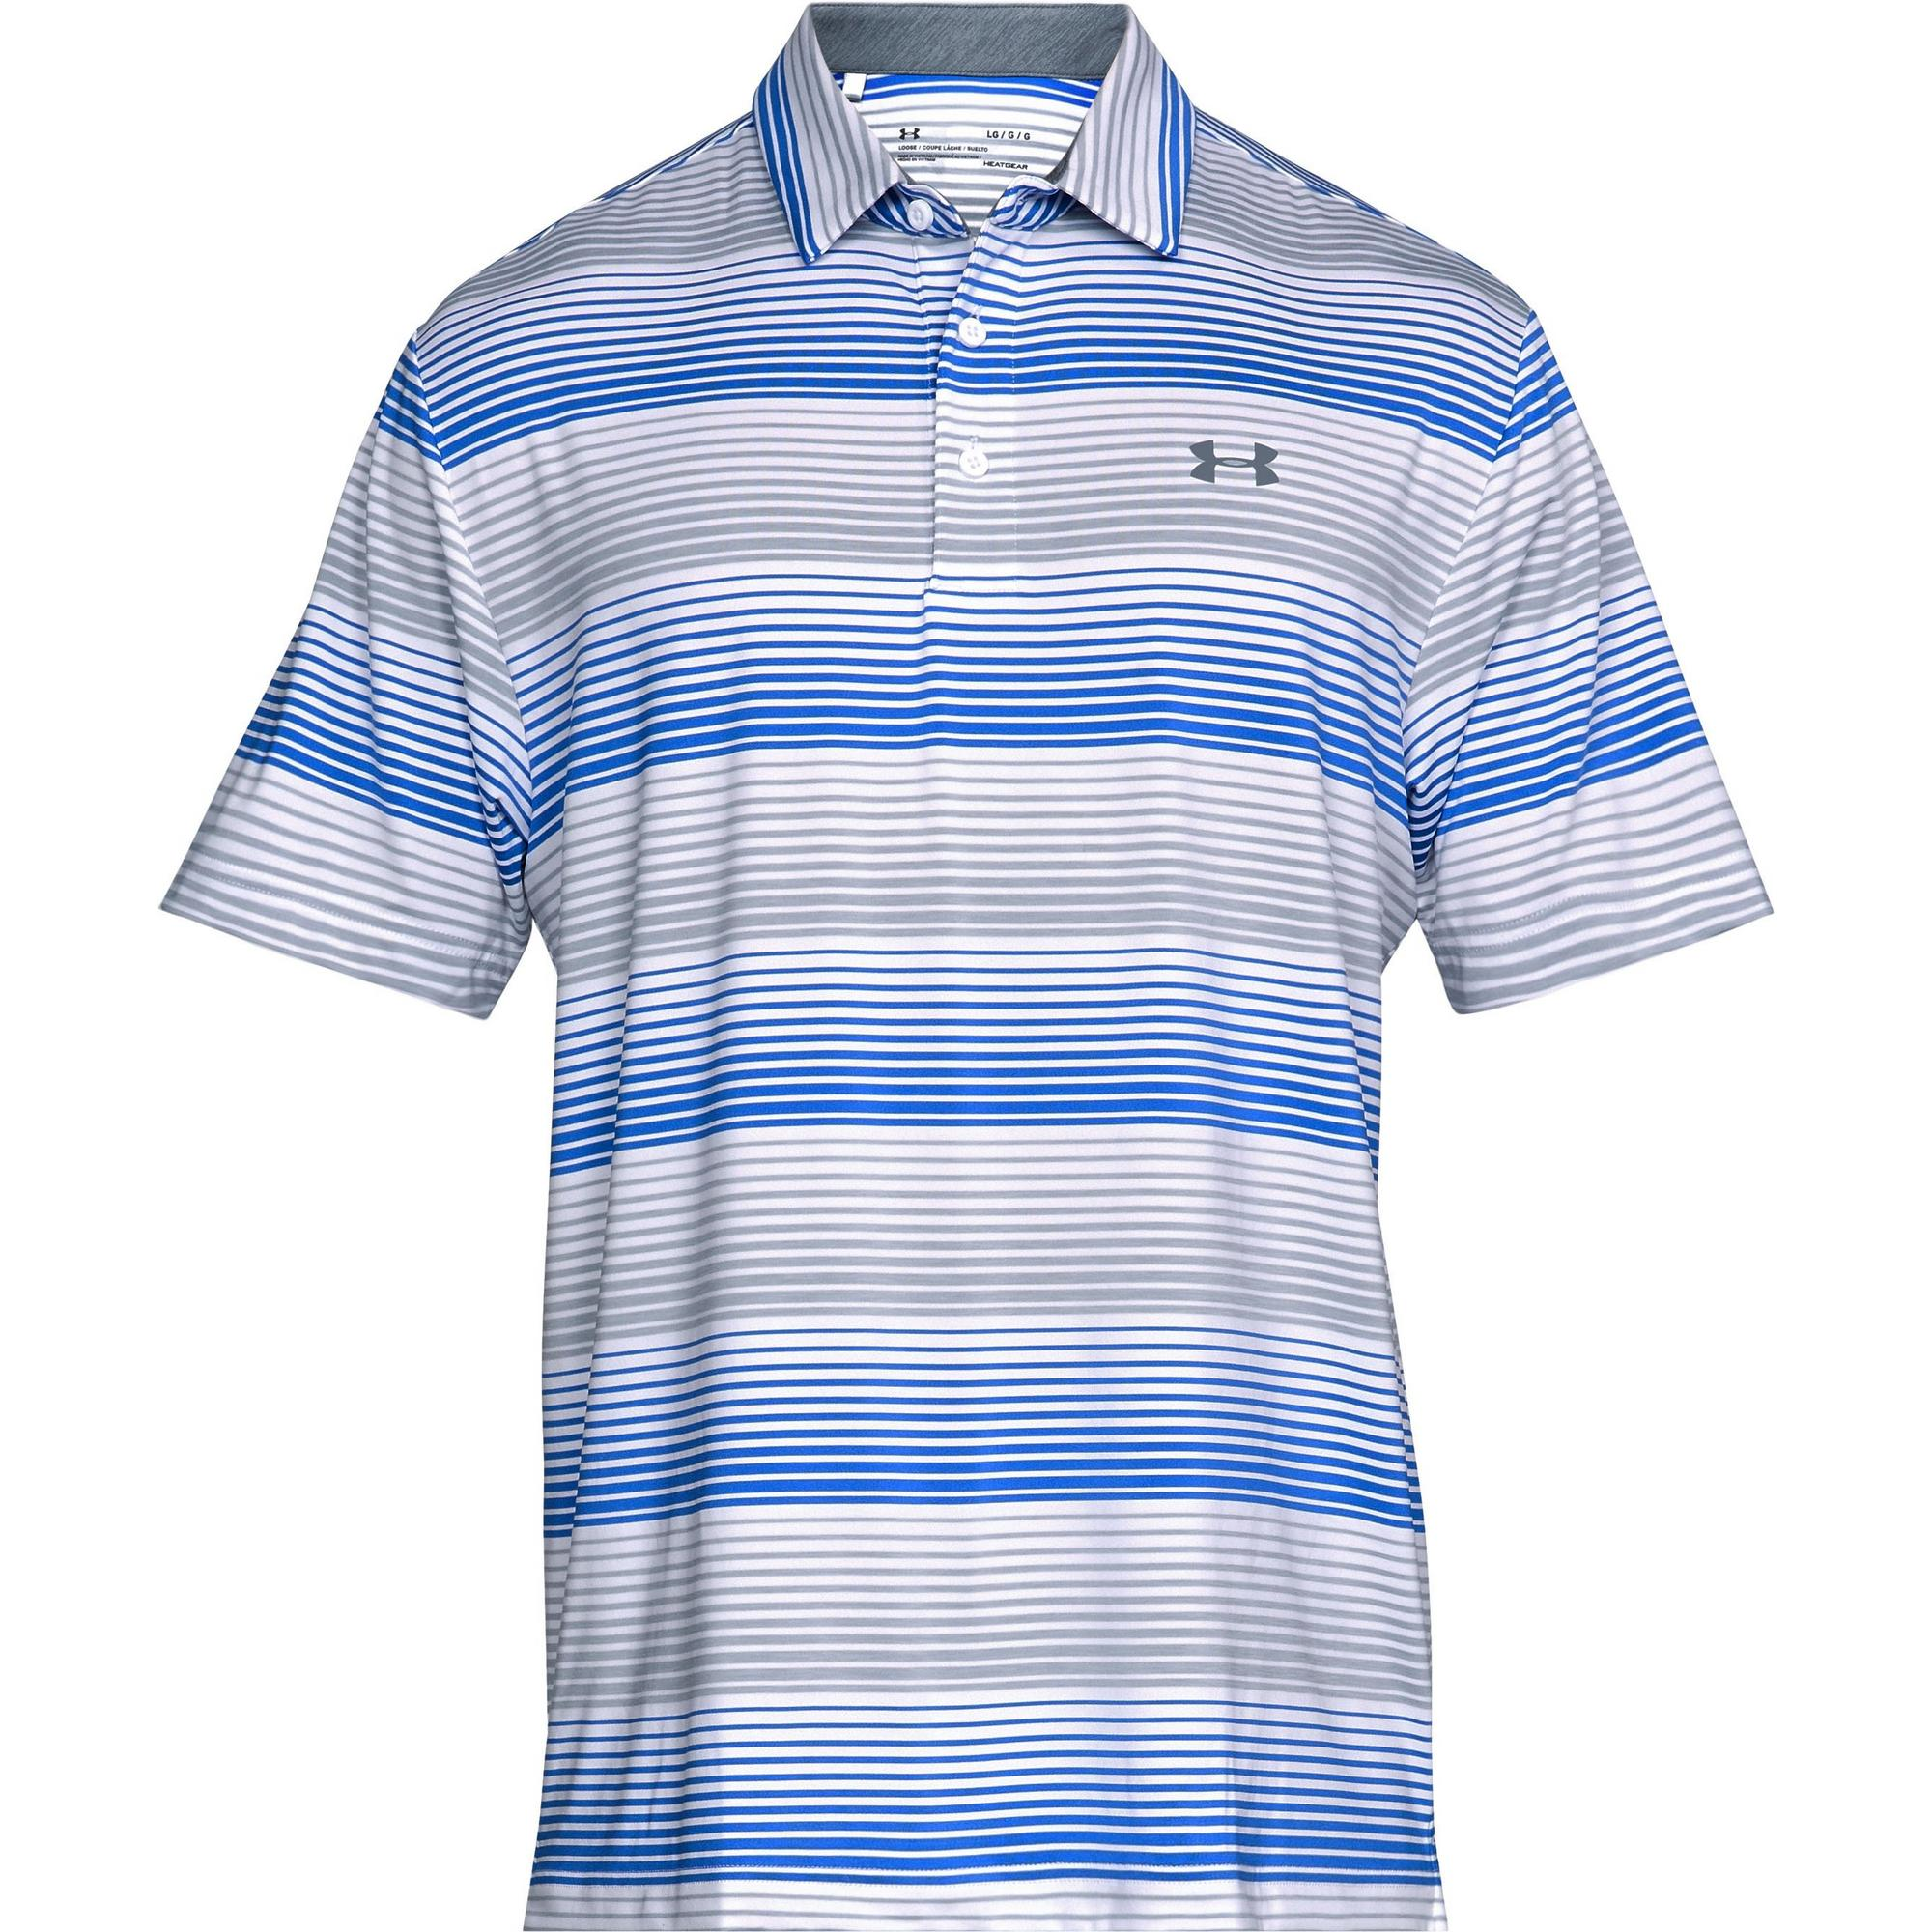 4f144e4372 Men's Playoff Blast Stripe Short Sleeve Polo | UNDER ARMOUR | Golf Town  Limited